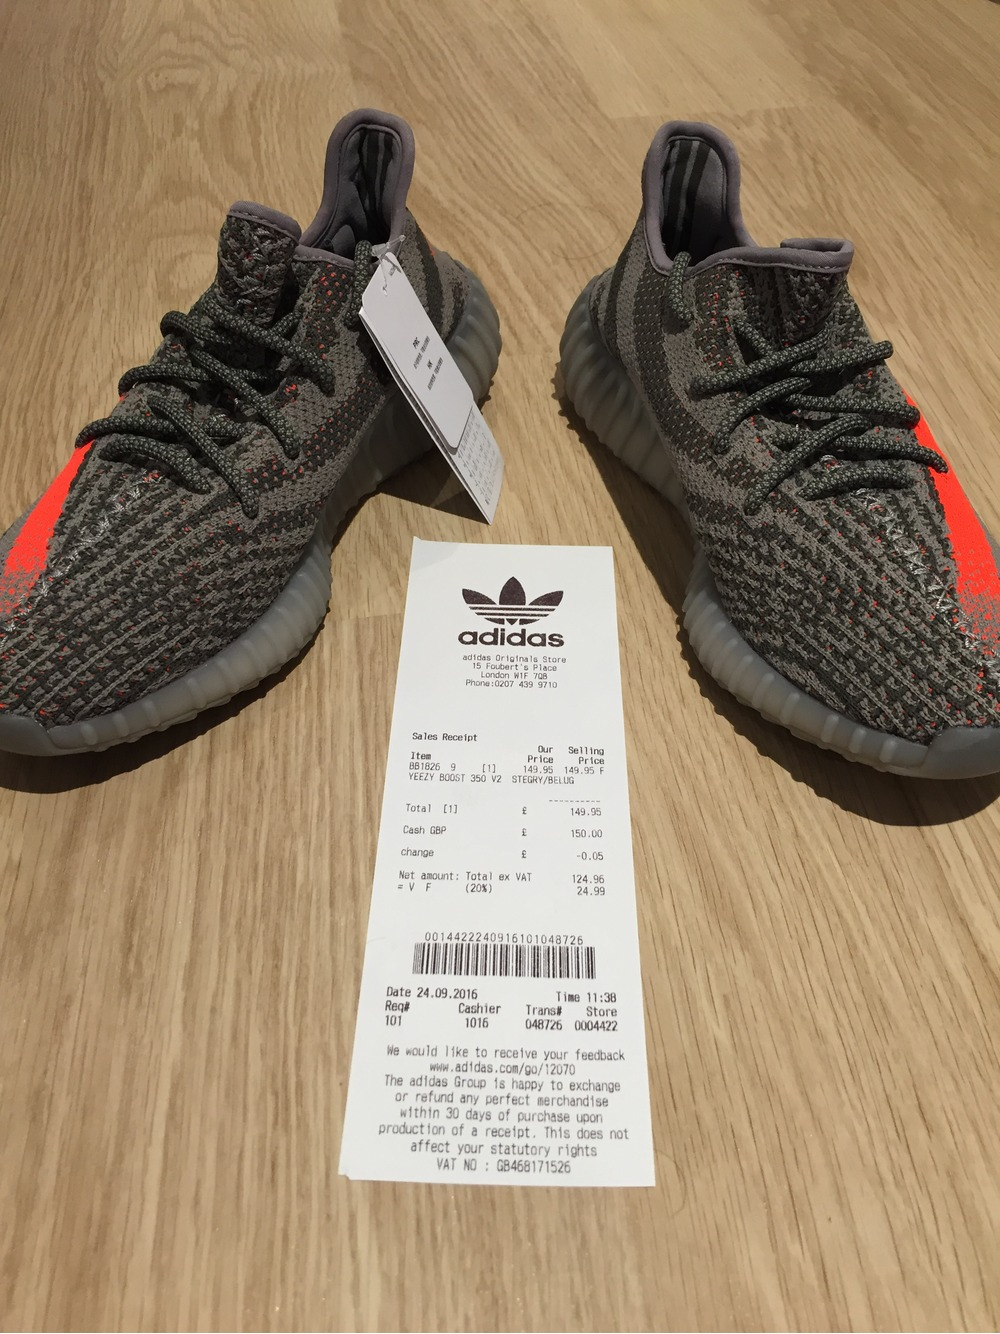 YEEZY Boost 350 v2 Black / Red Raffle (Infants) HBX. HBX